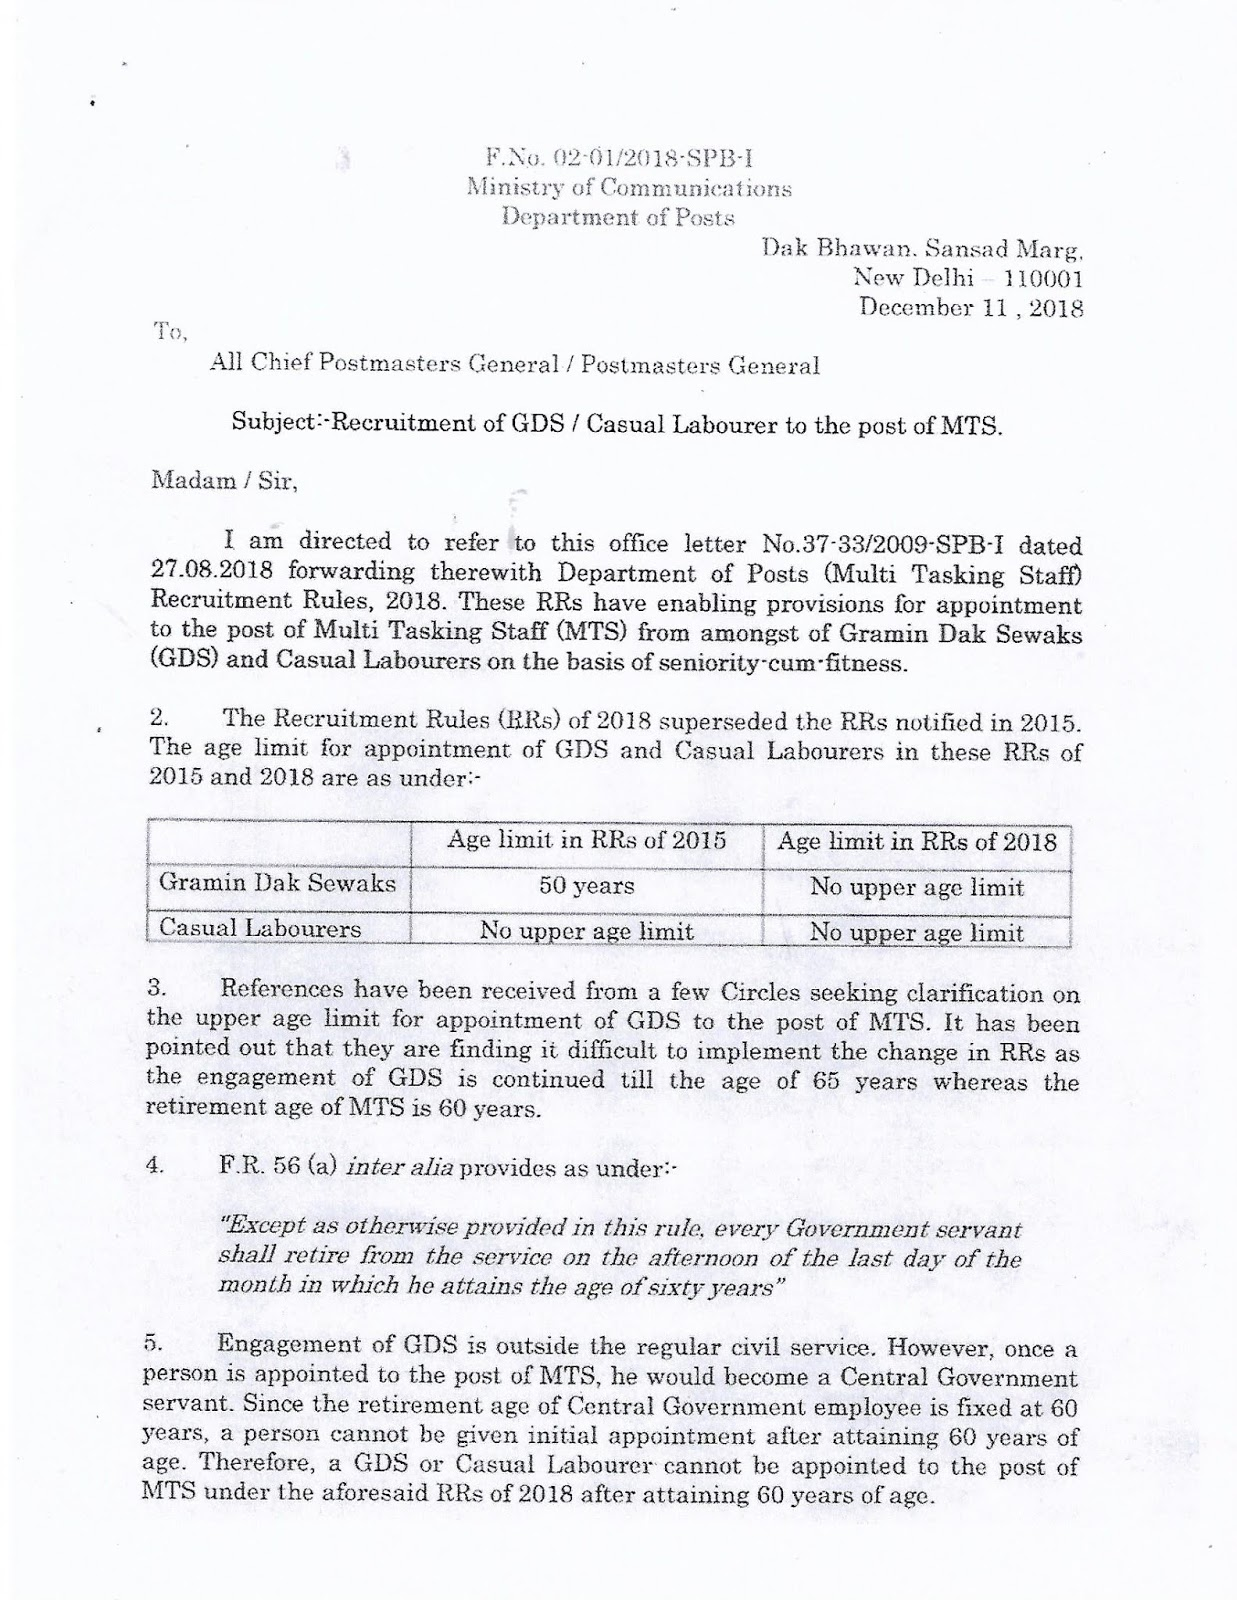 Recruitment of GDS / Casual Labourer to the Post of MTS